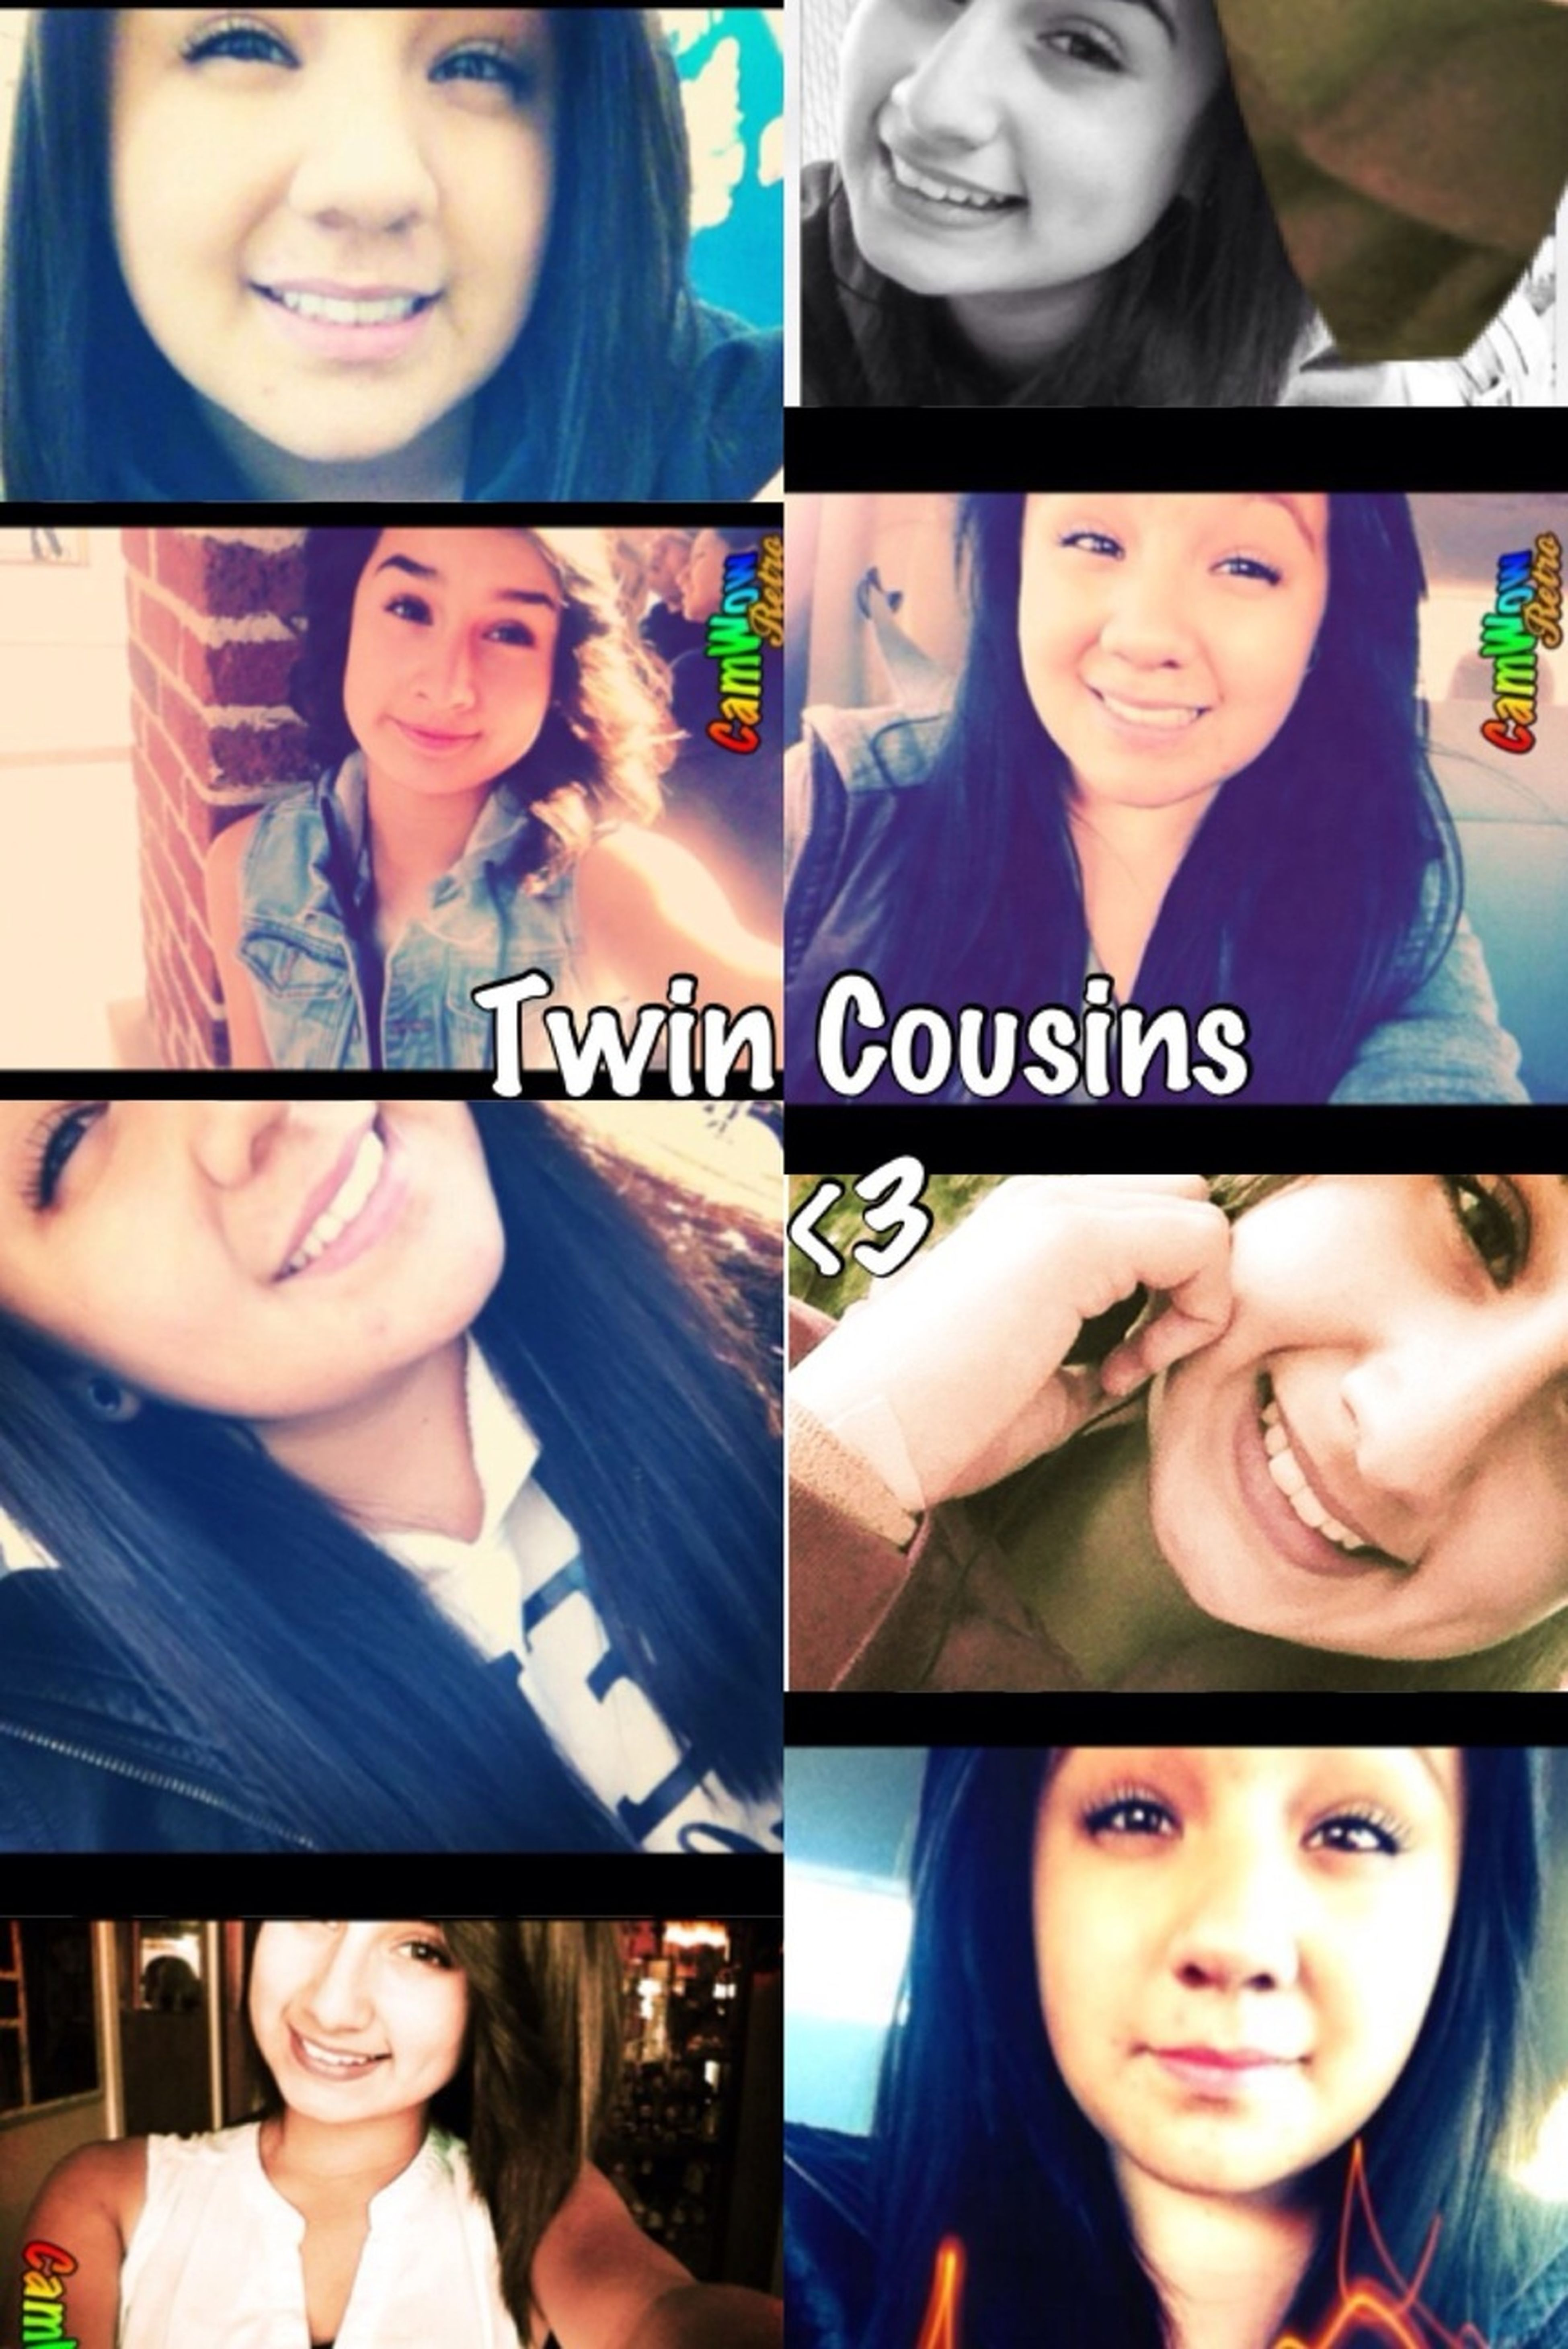 Me And My Twin Cousin <3